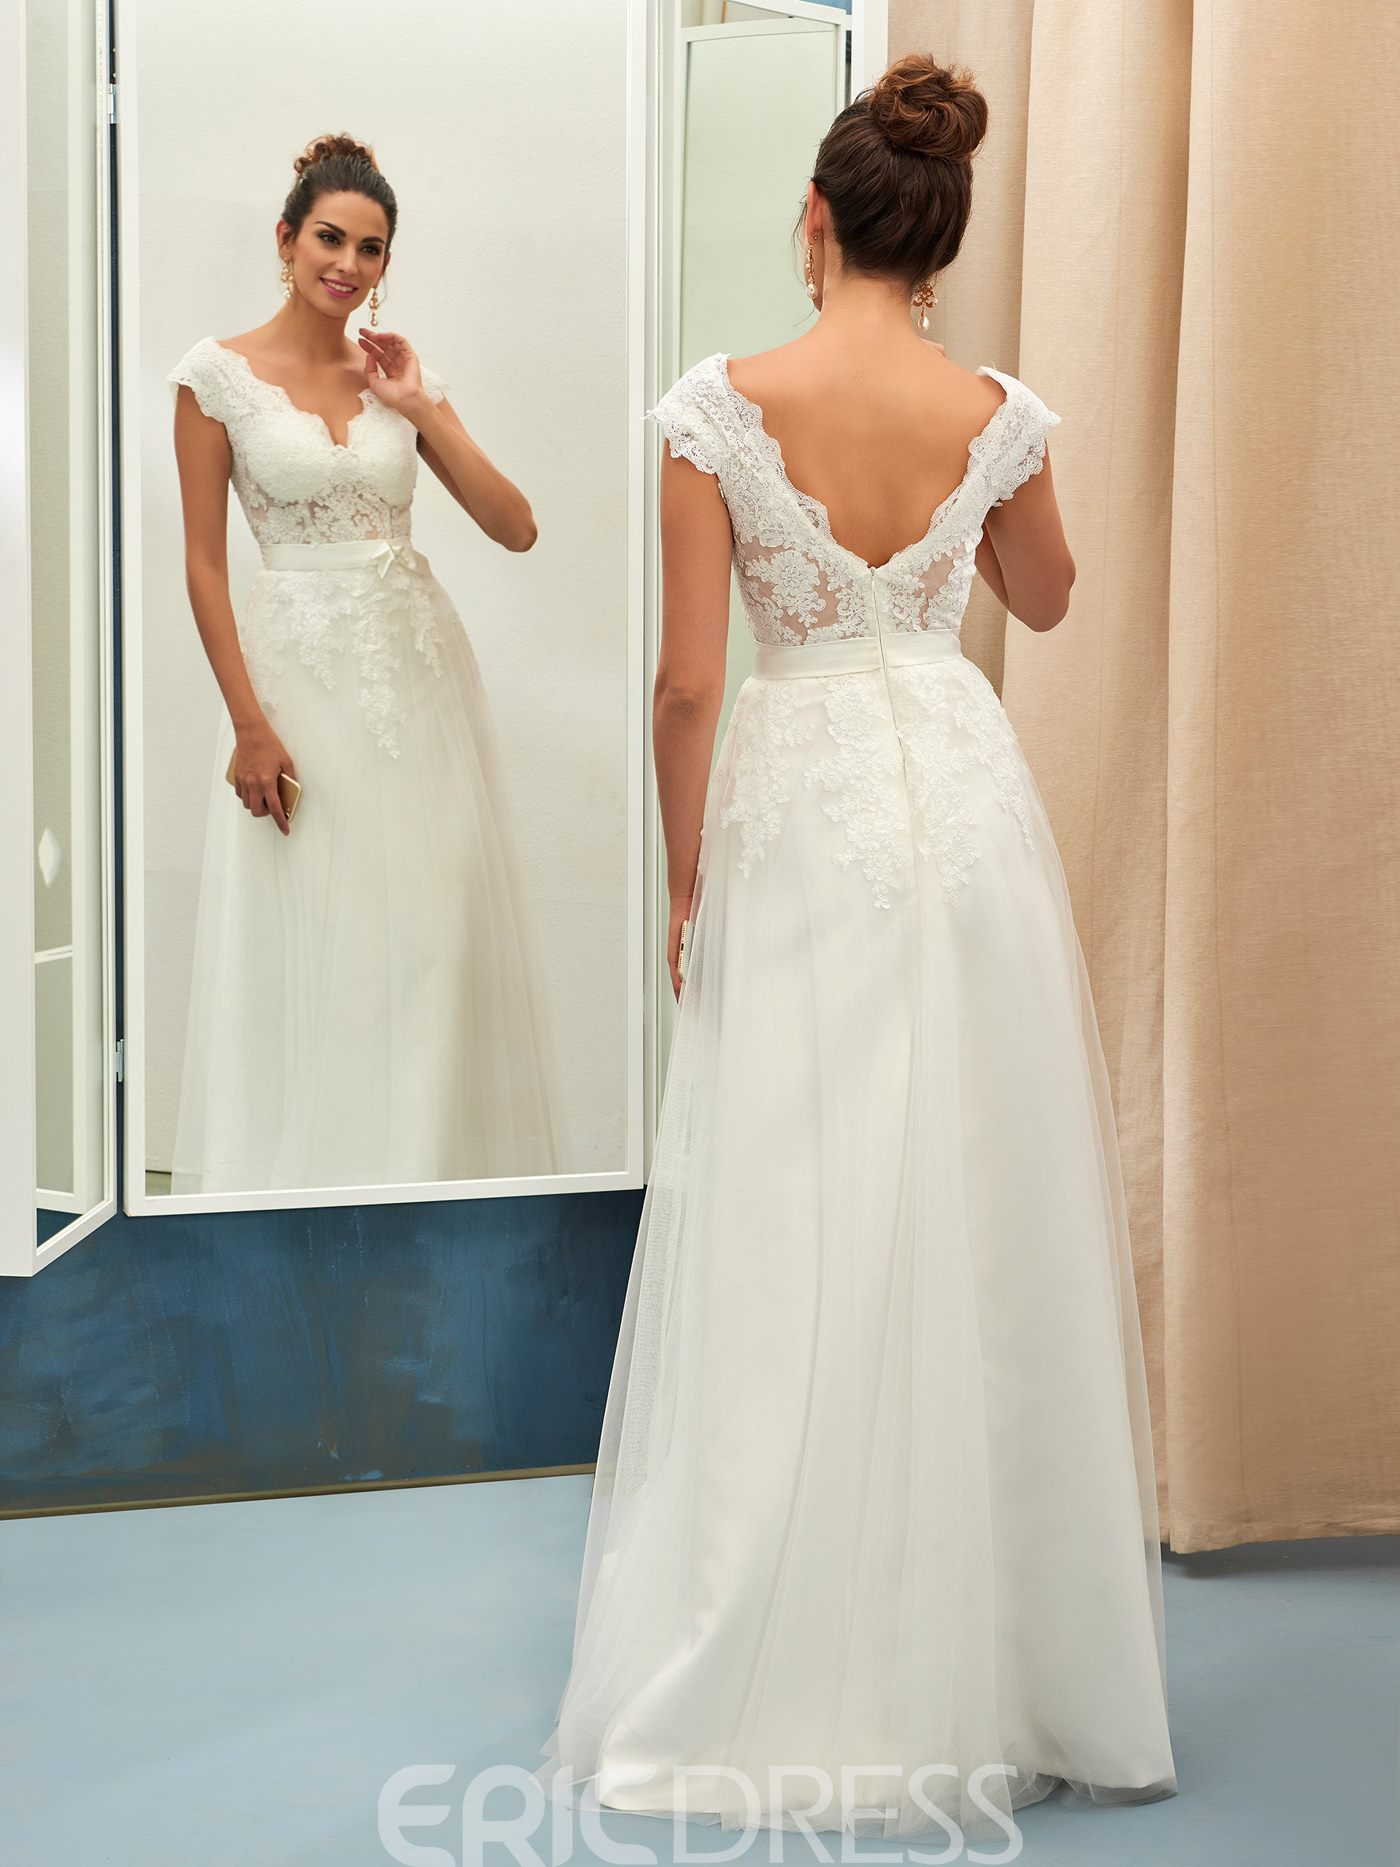 Ericdress Charming V Neck Appliques A Line Wedding Dress